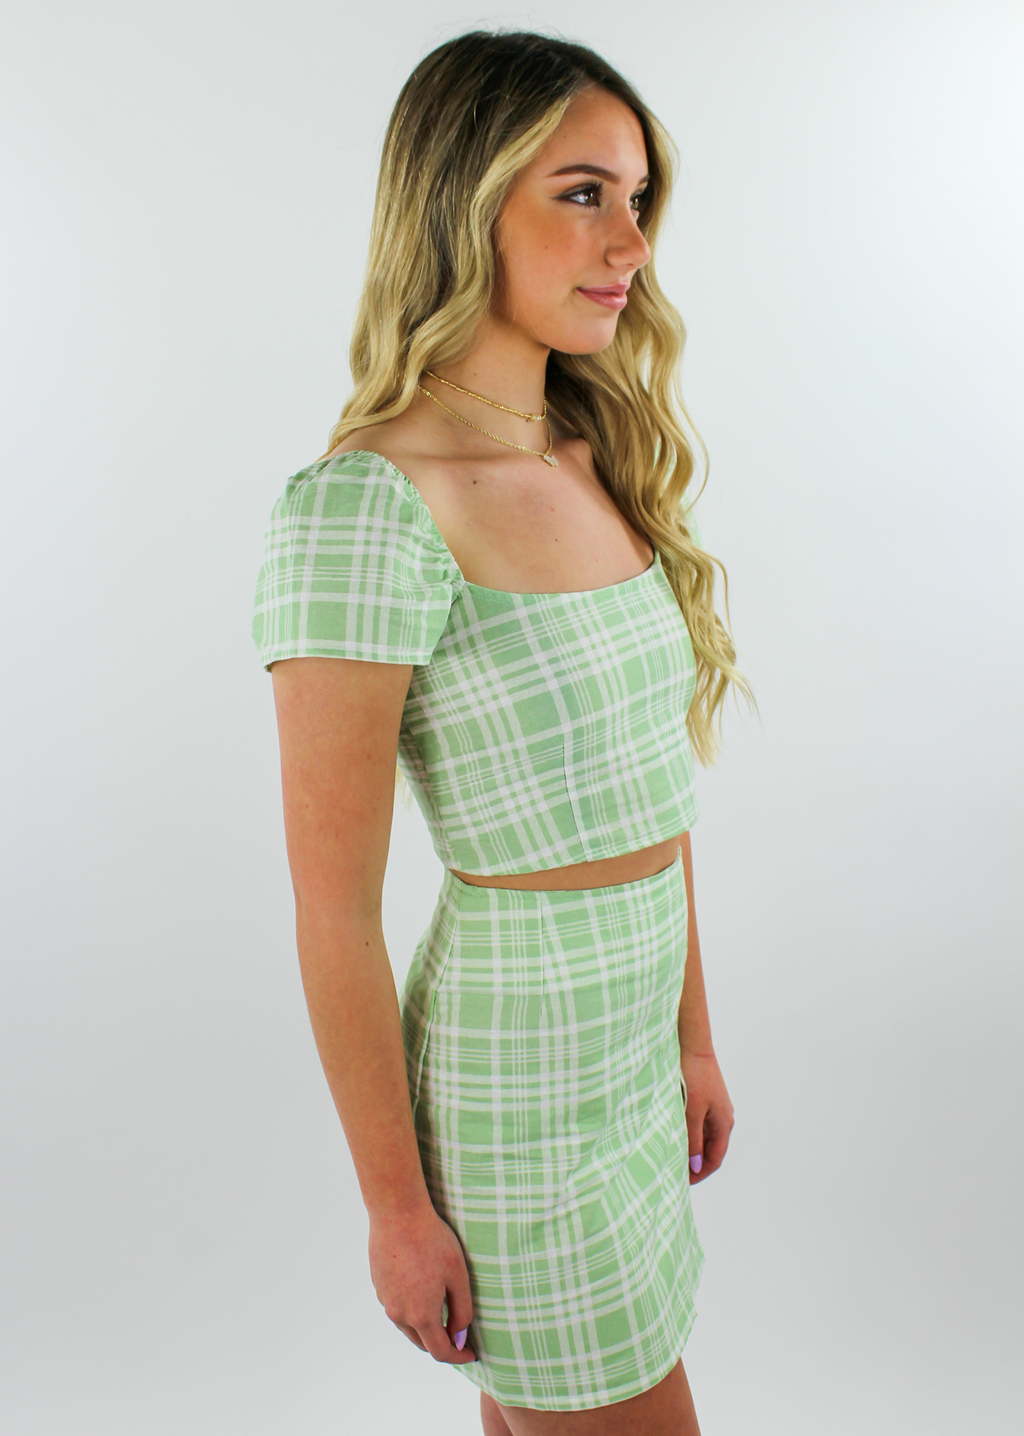 Clueless Top ★ Green Plaid - Rock N Rags